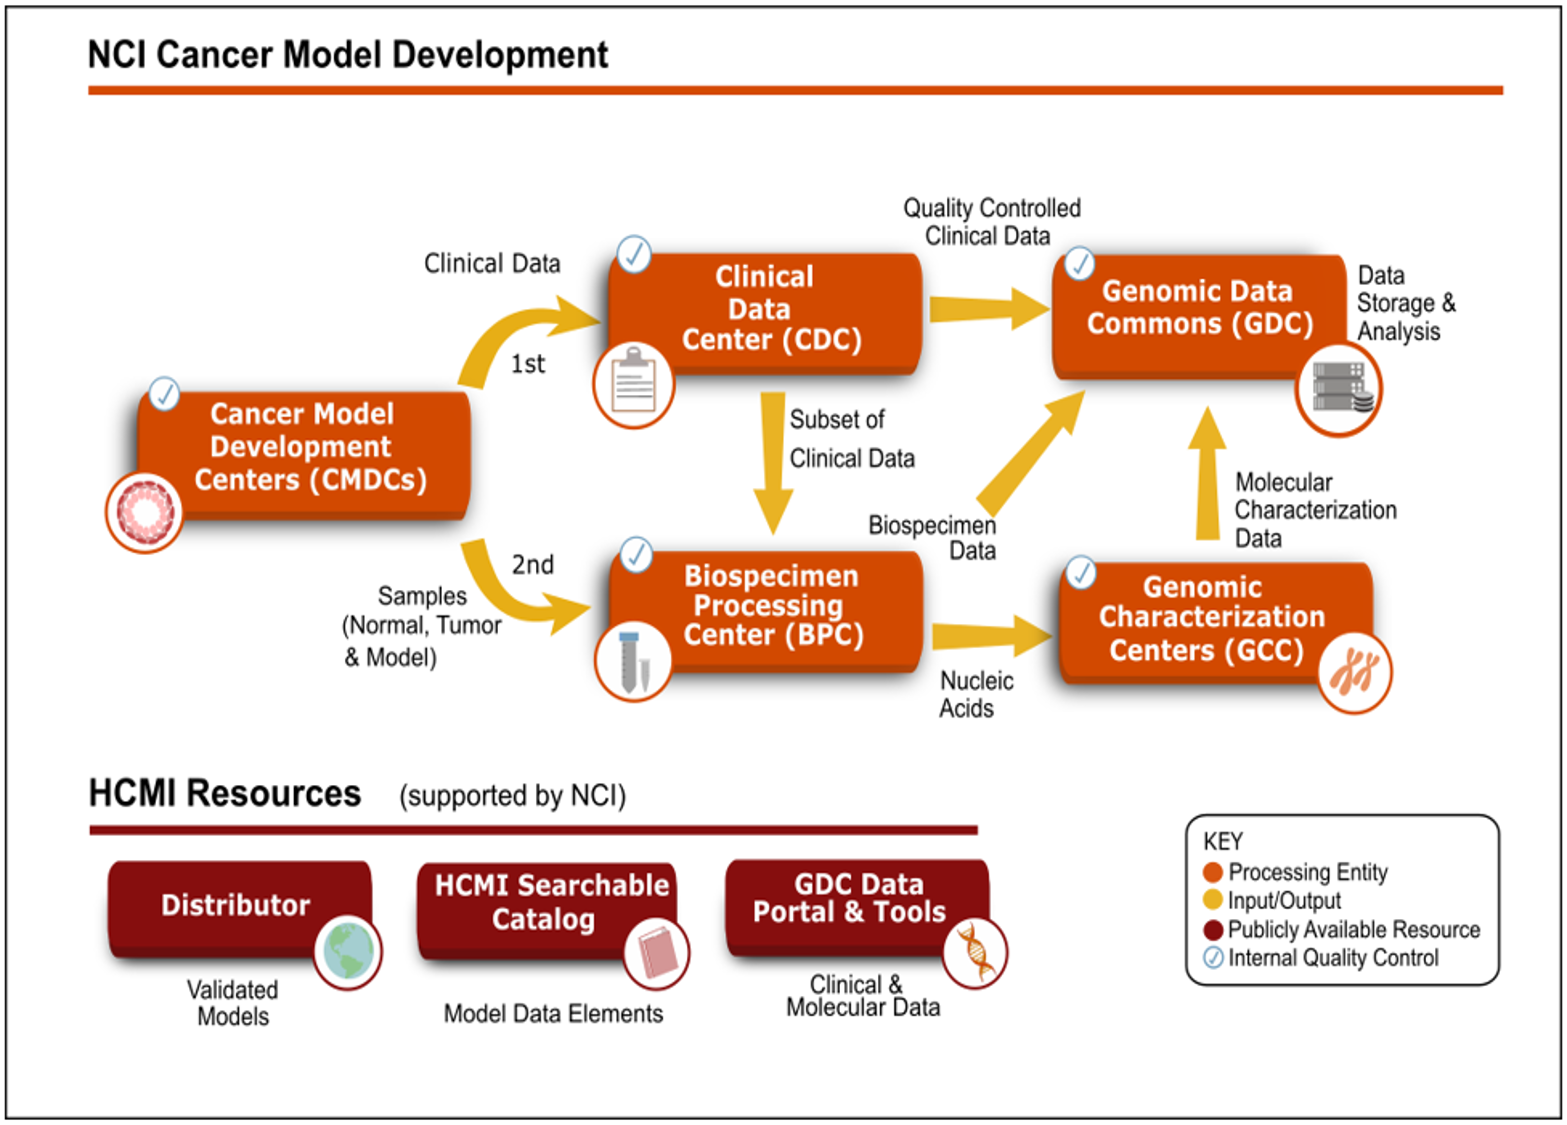 NCI Cancer Model Development Flowchart